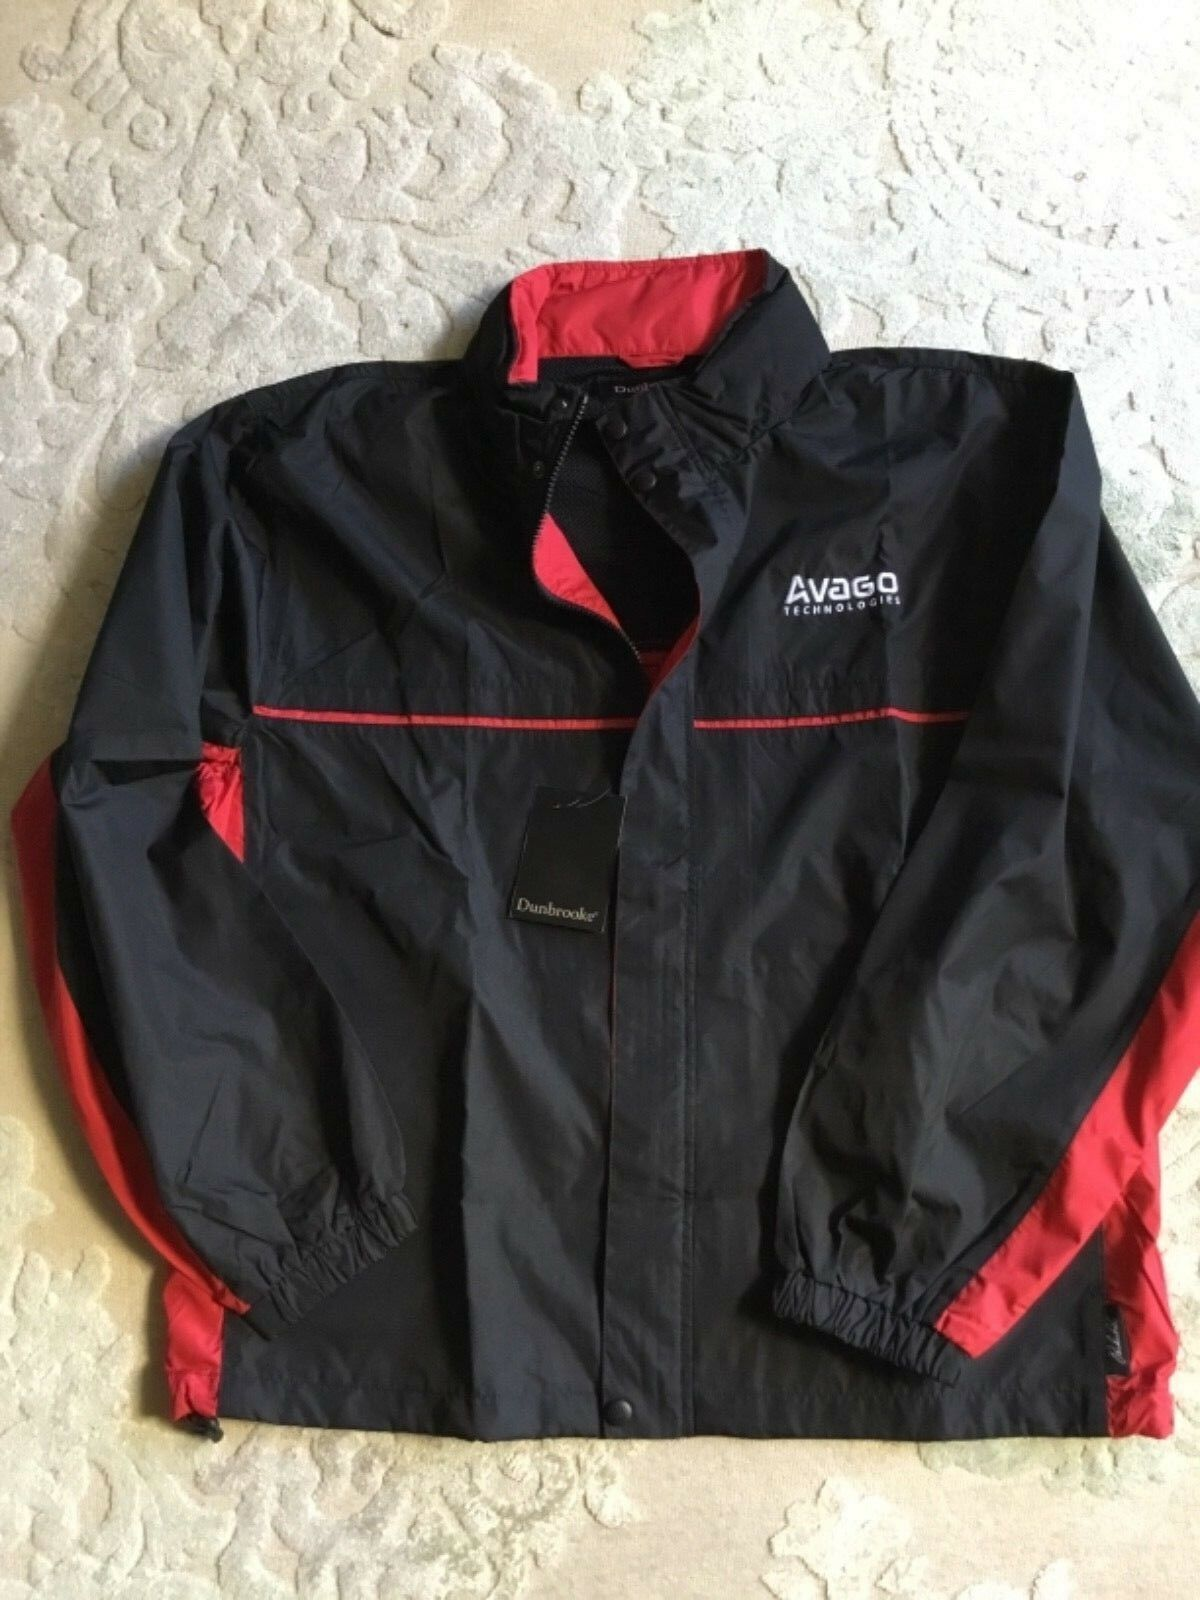 Primary image for New WT Avago Dunbrook  Black Jacket Windbreaker Size L